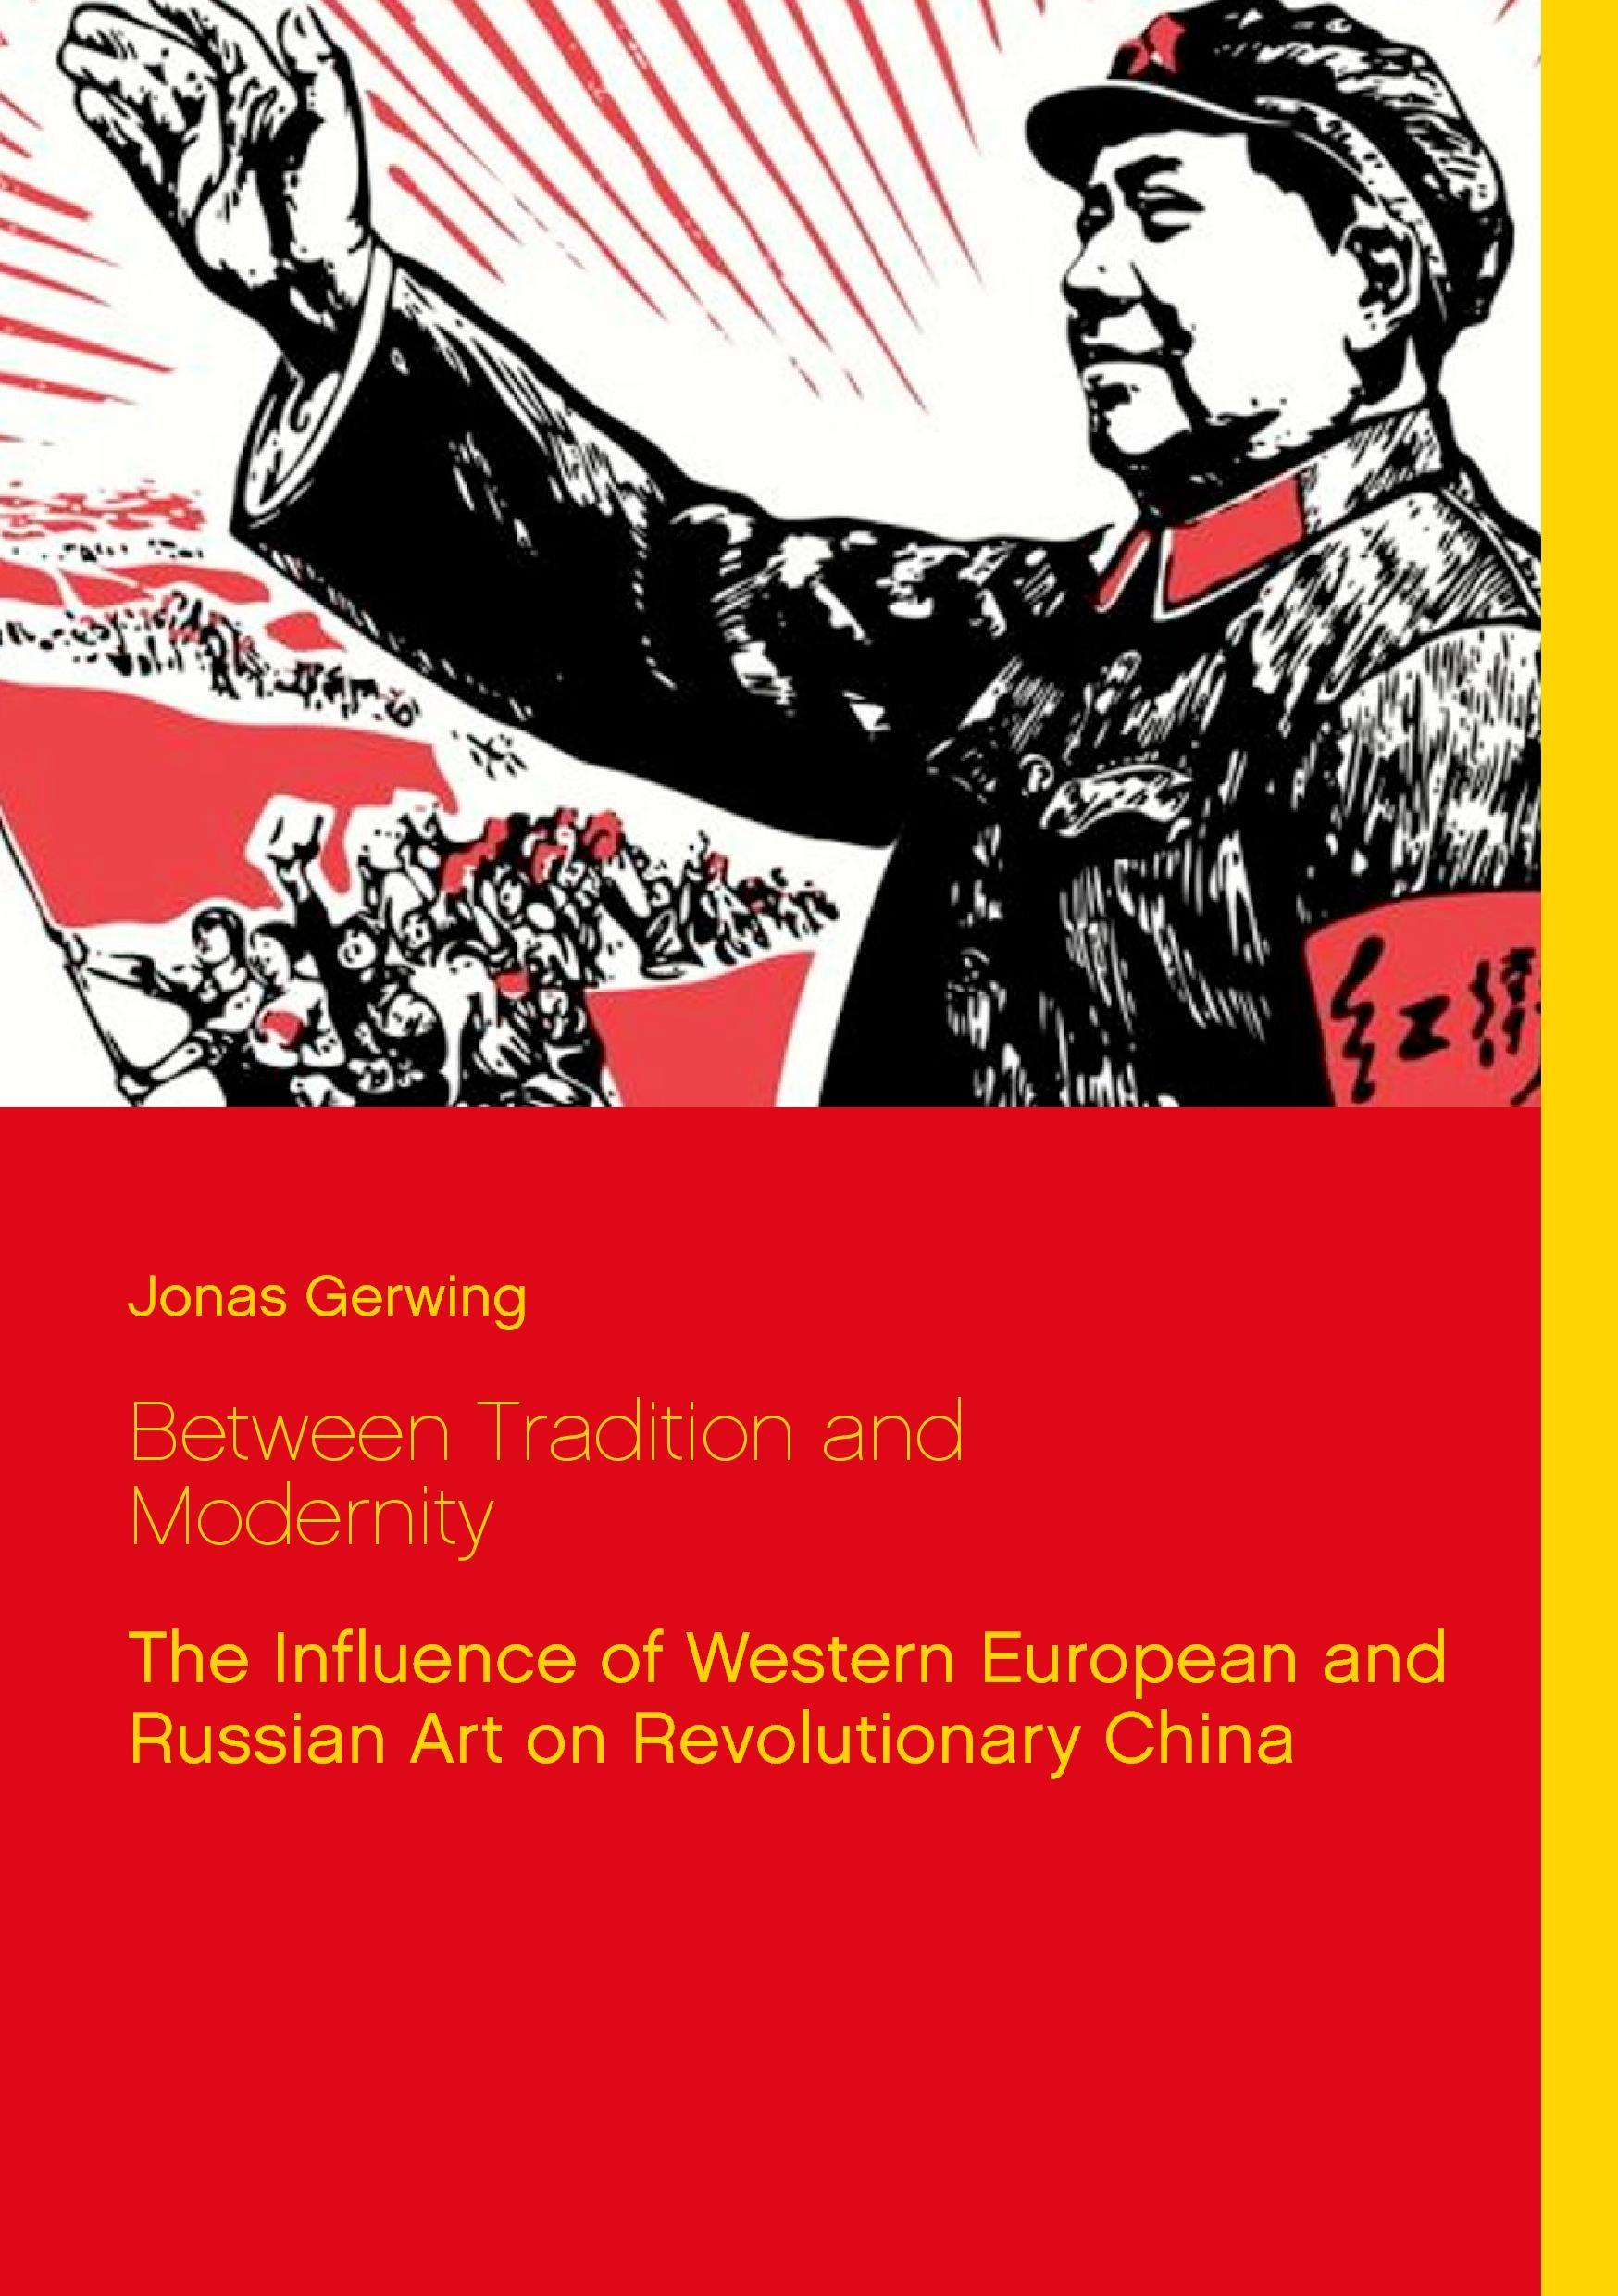 Between Tradition and Modernity - The Influence of Western Europ